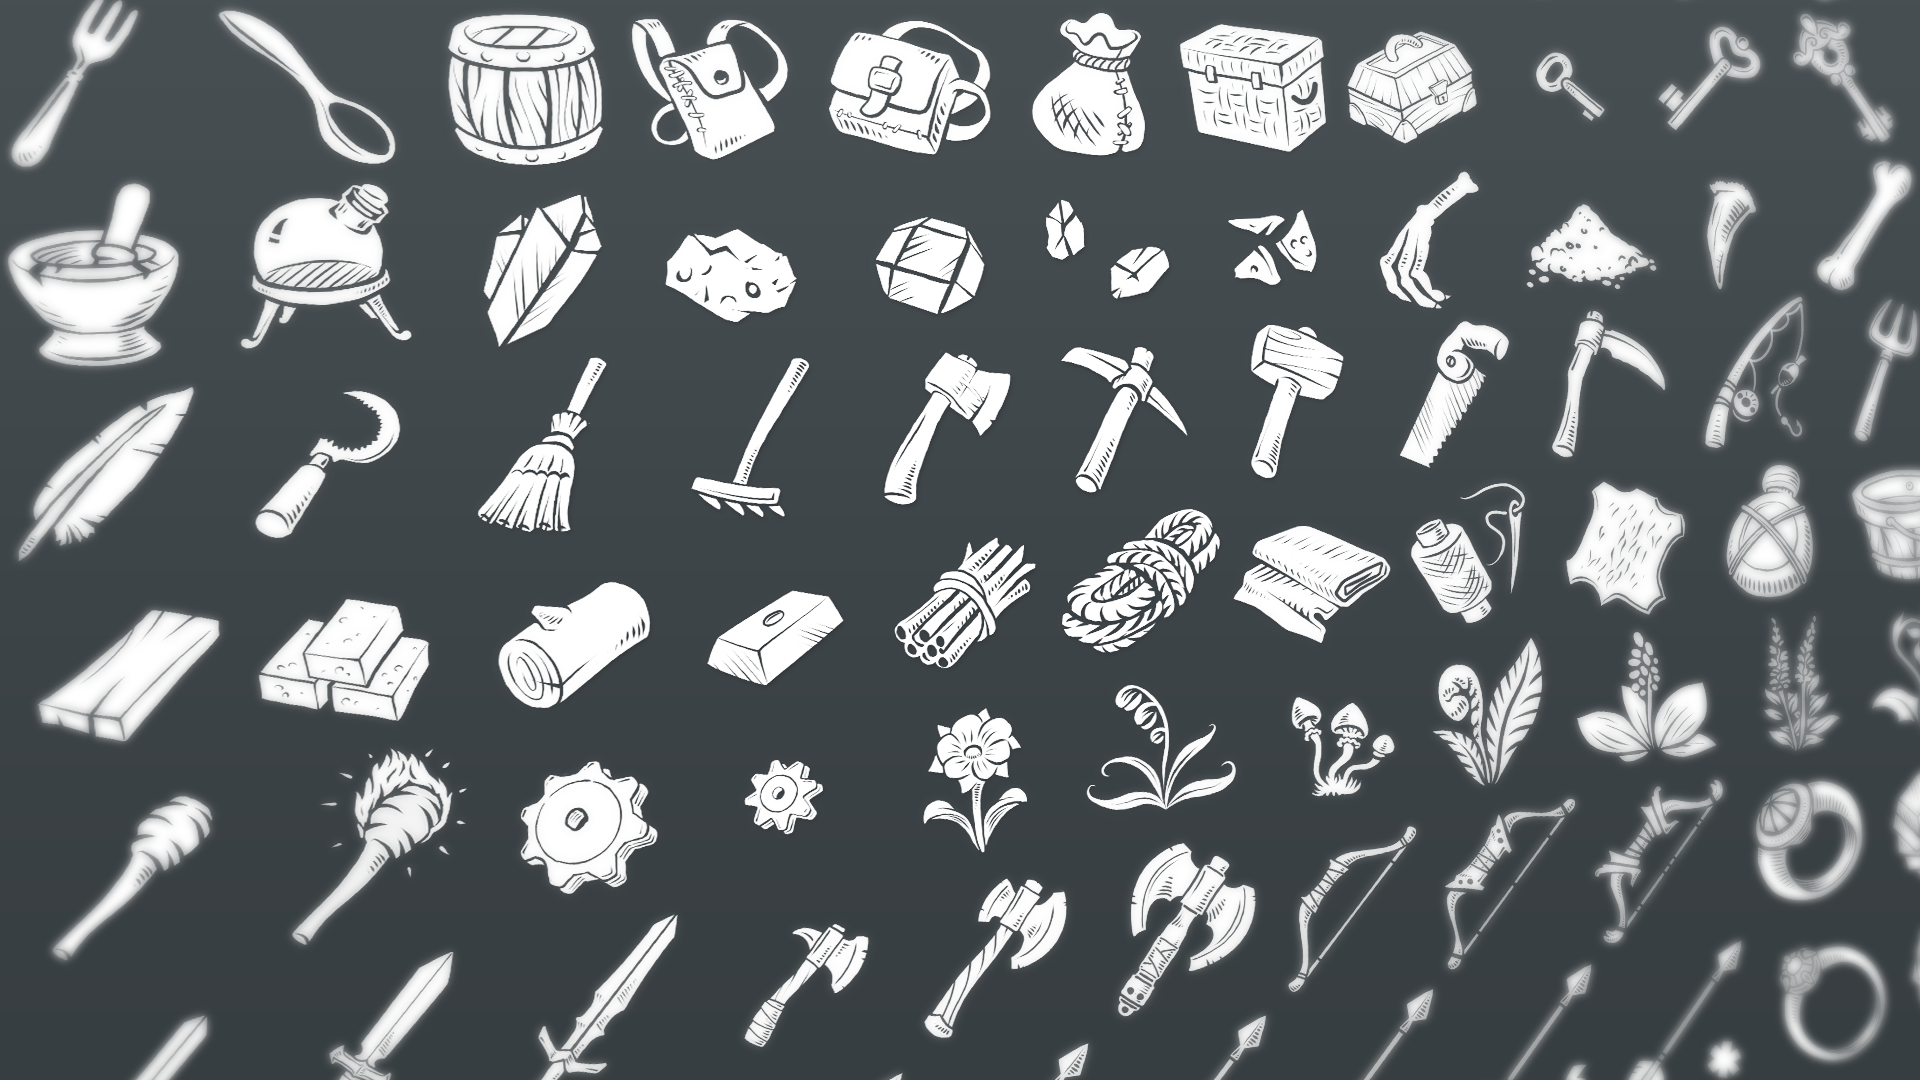 Fantasy RPG Flat Inventory Icons by Leonid Deburger in 2D